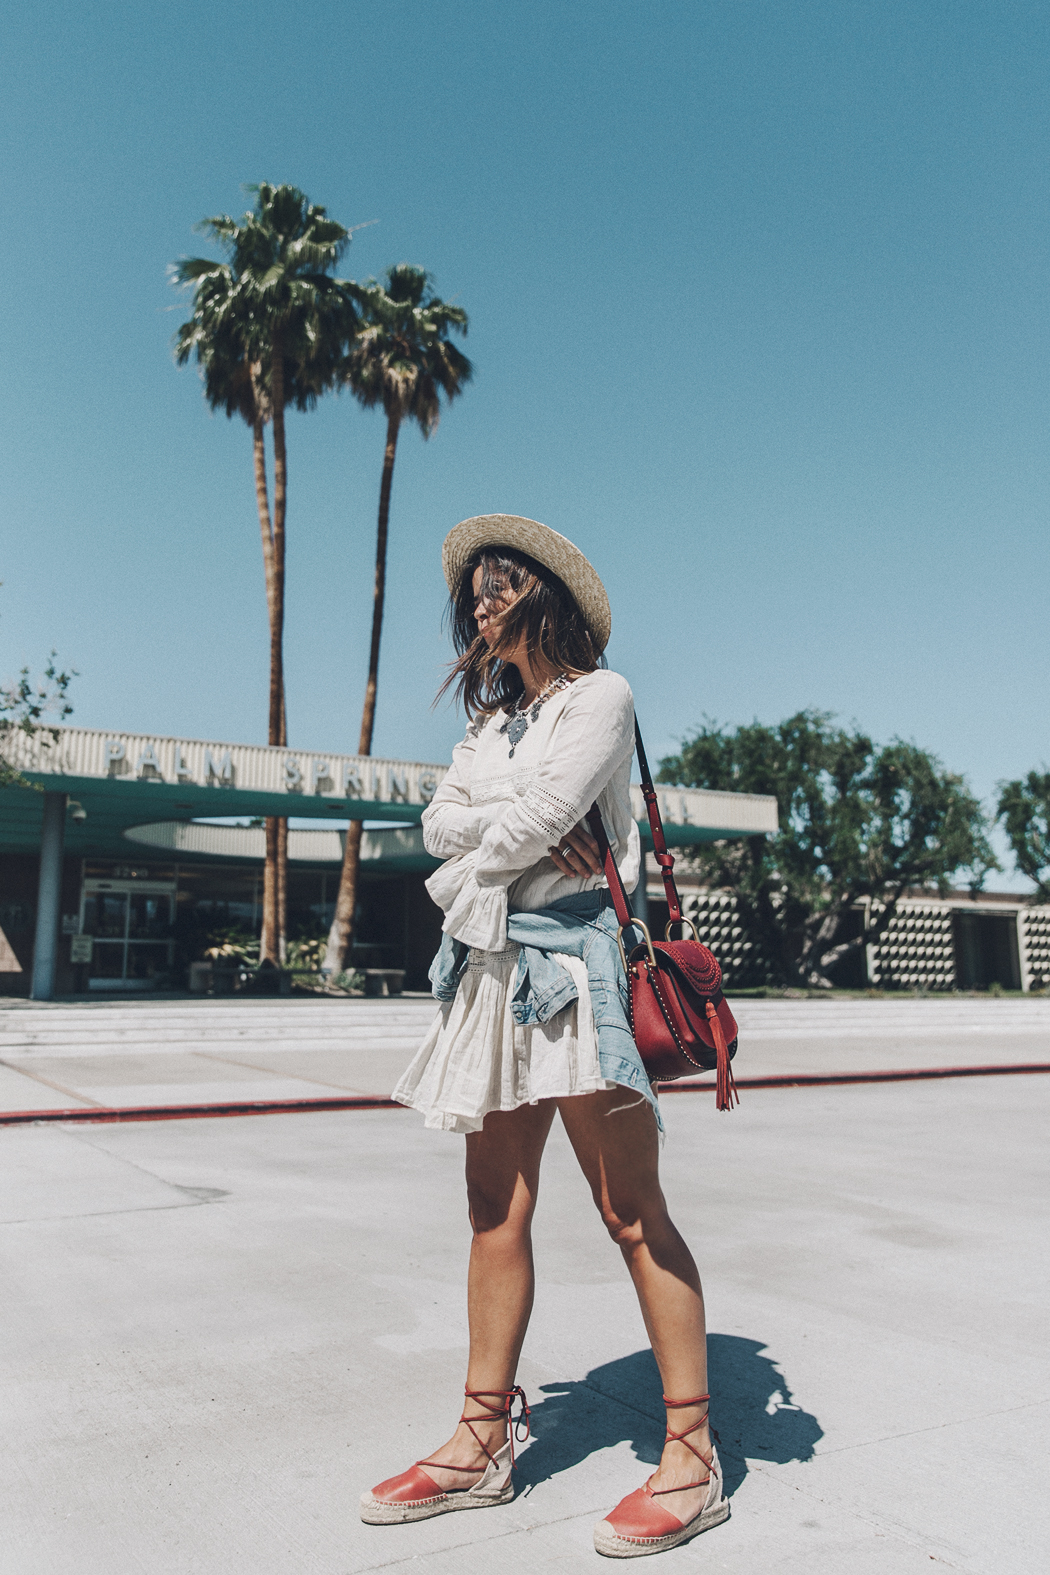 Coachella_2016-Revolve_Clothing-Tula_Rosa_Dress-Boho_Dress-Festival_Outfit-Straw_Hat-Soludos_Espadrilles-Collage_Vintage-1